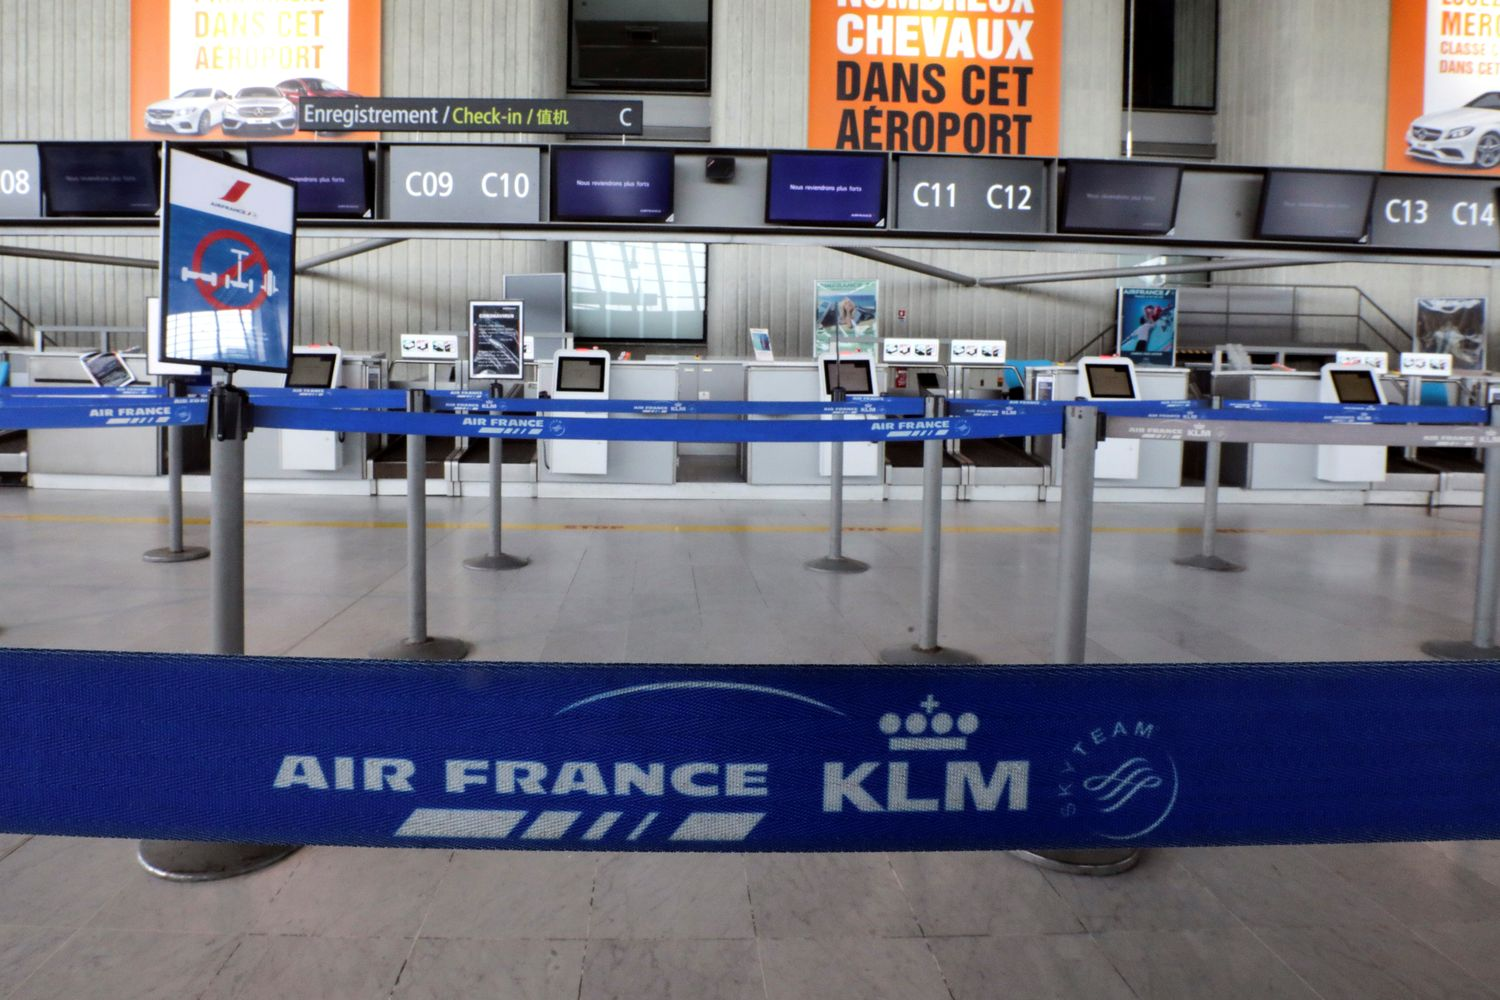 EU clears €7bn in state aid for Air France